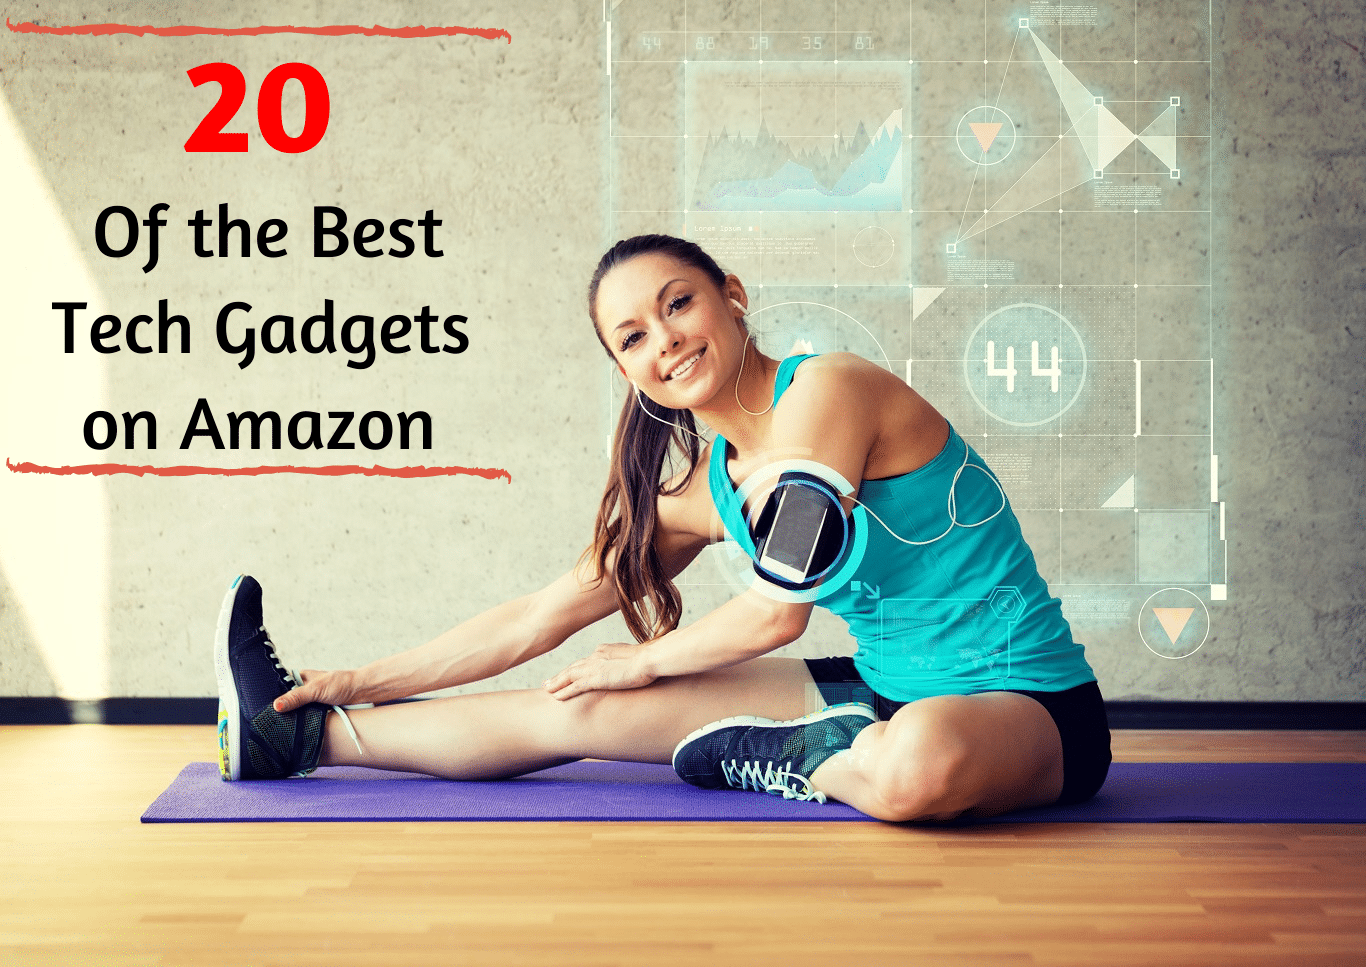 20 Of the Best Tech Gadgets on Amazon